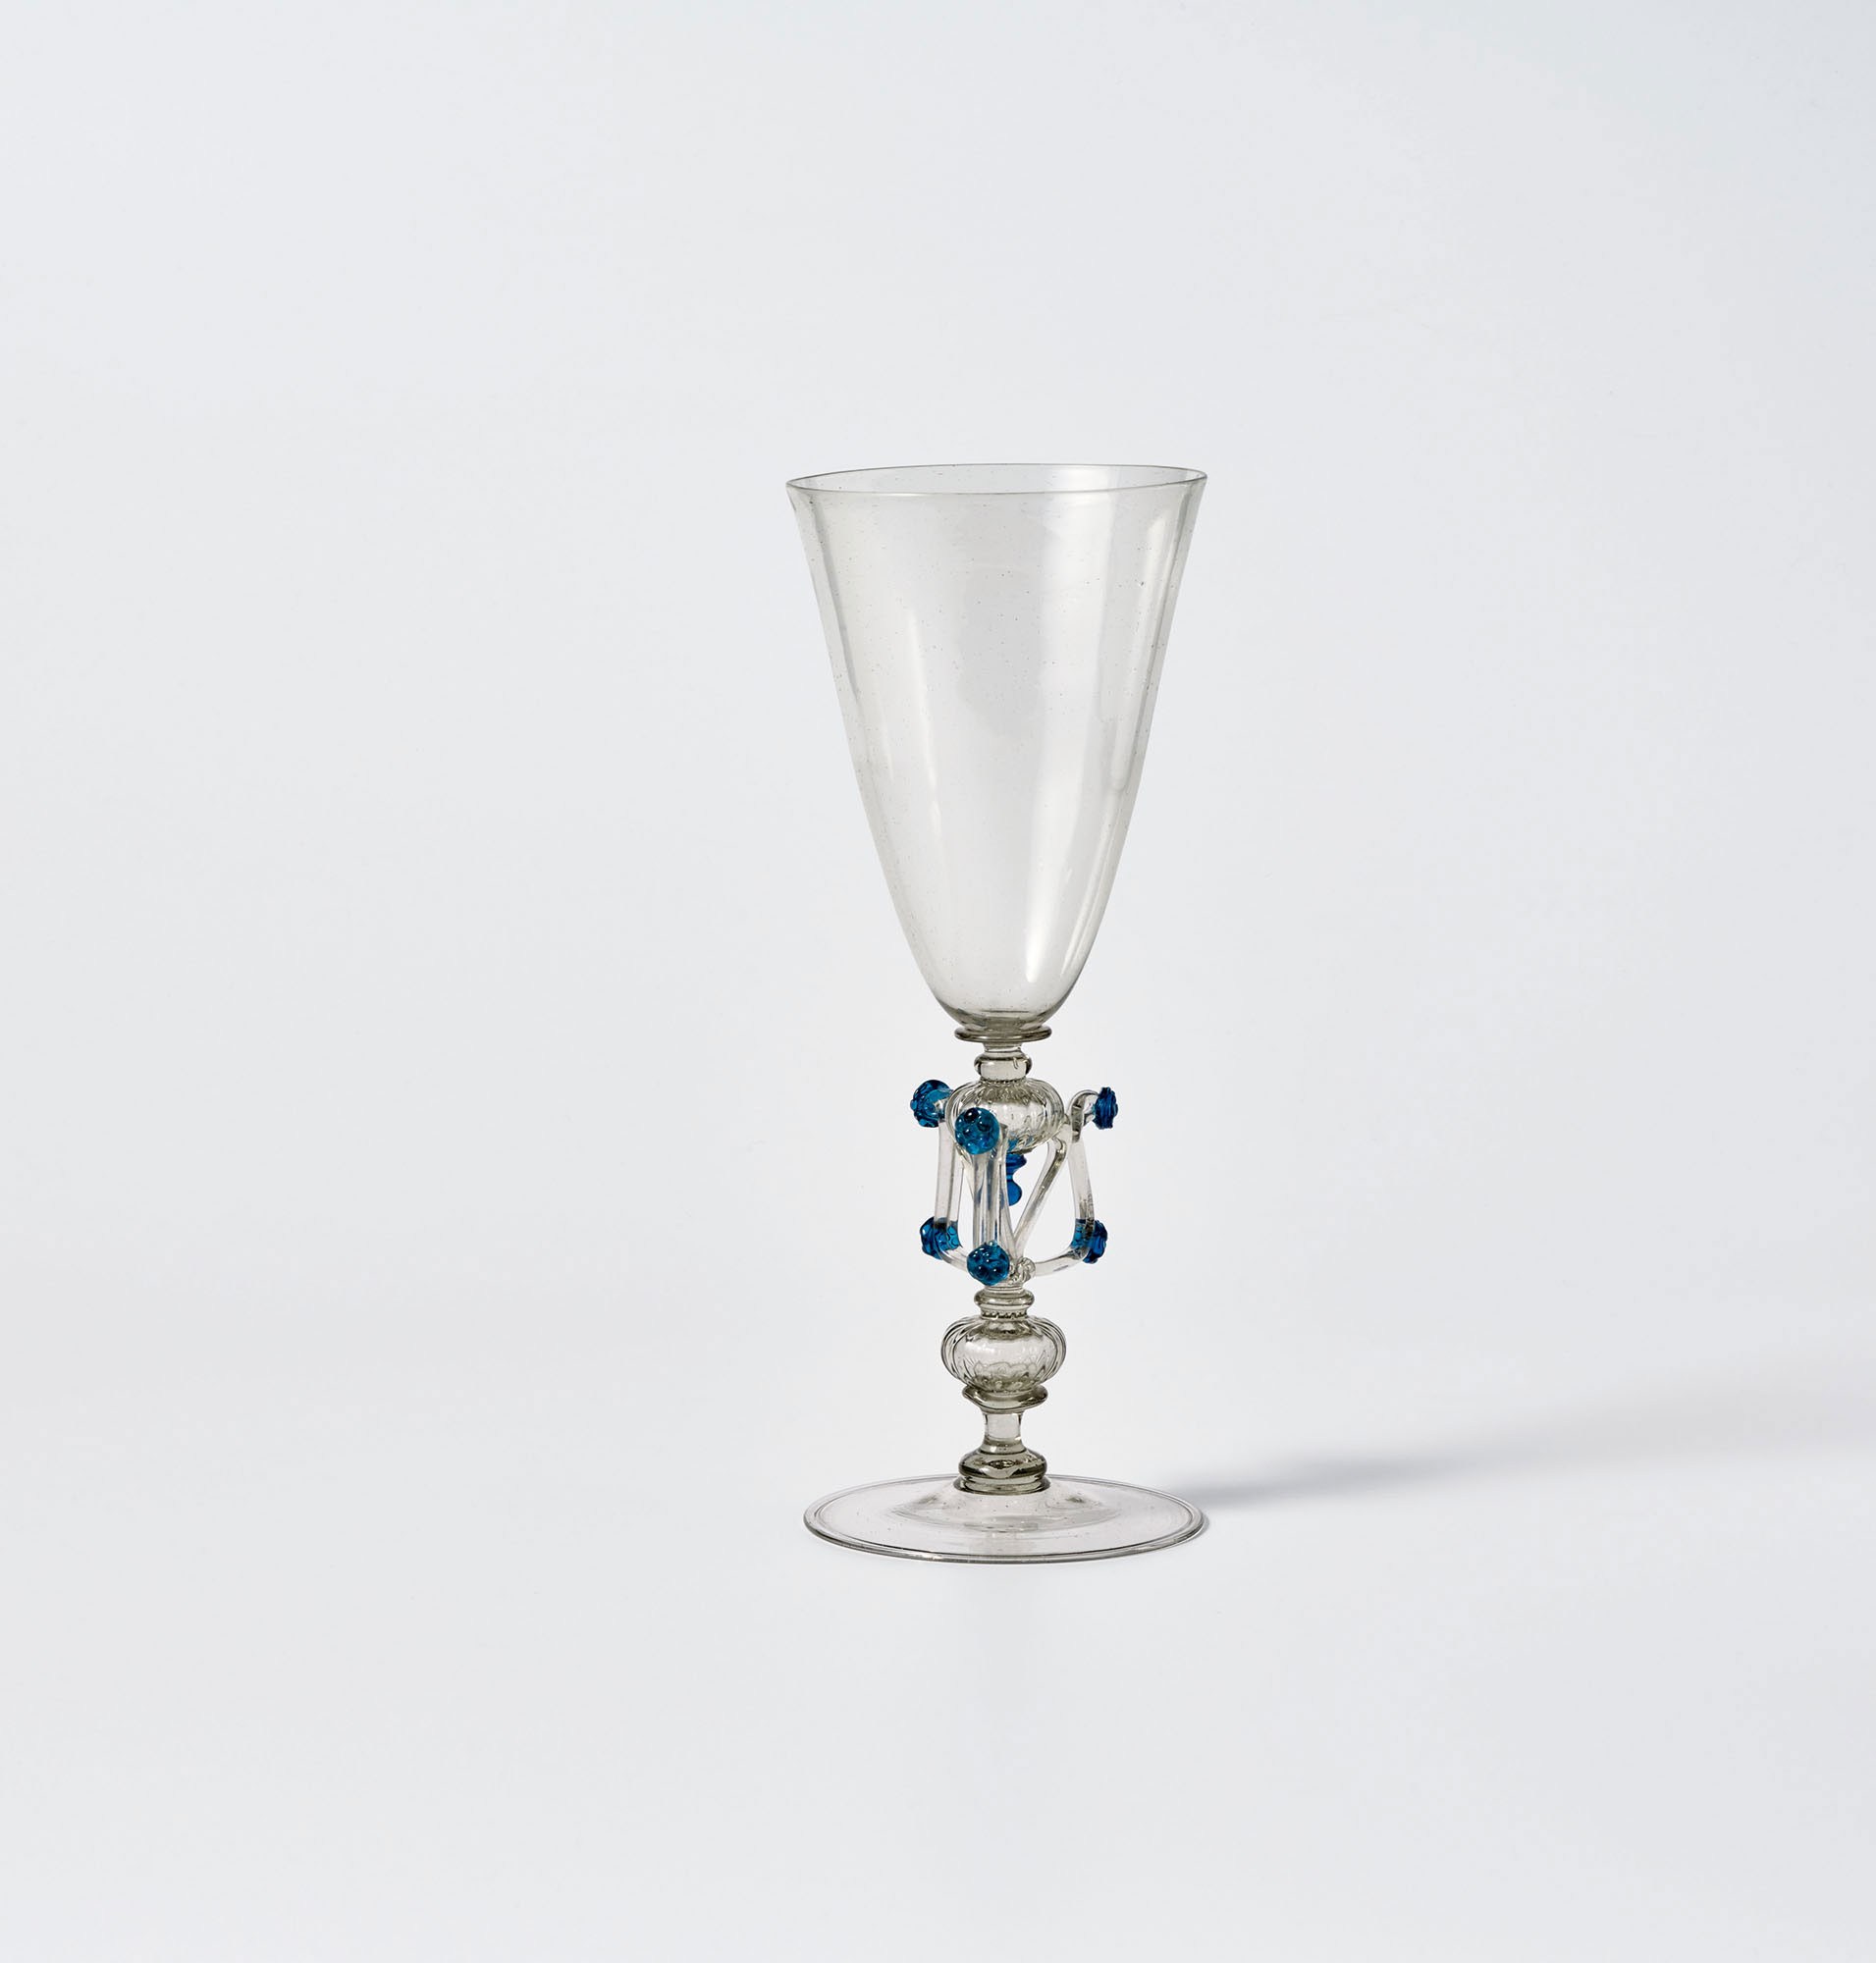 Clear glass goblet with decorative stem featuring a cube shape with blue dots on corners